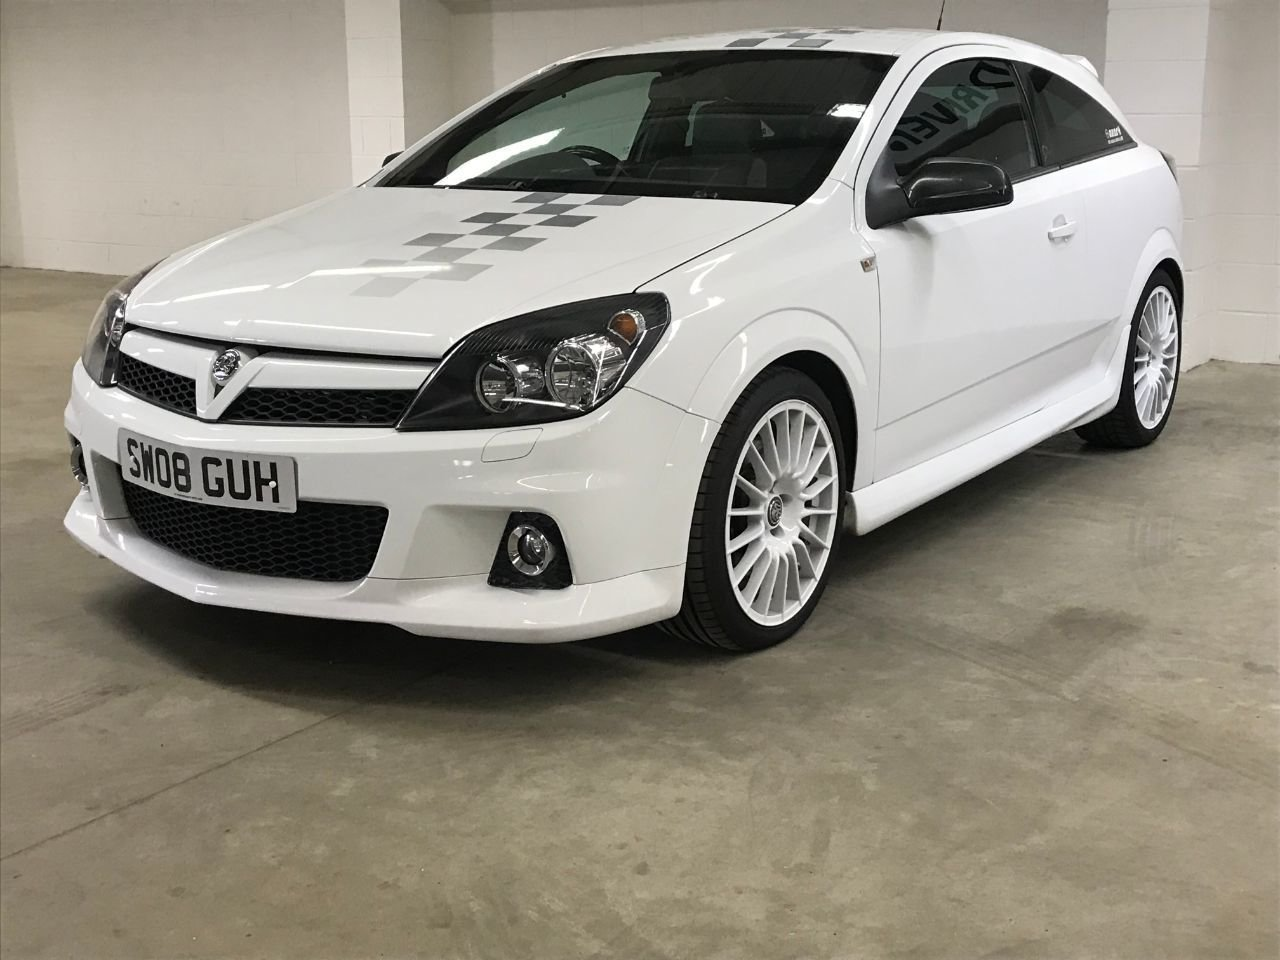 2008 VAUXHALL ASTRA VXR NURBURGRING For Sale (picture 3 of 5)